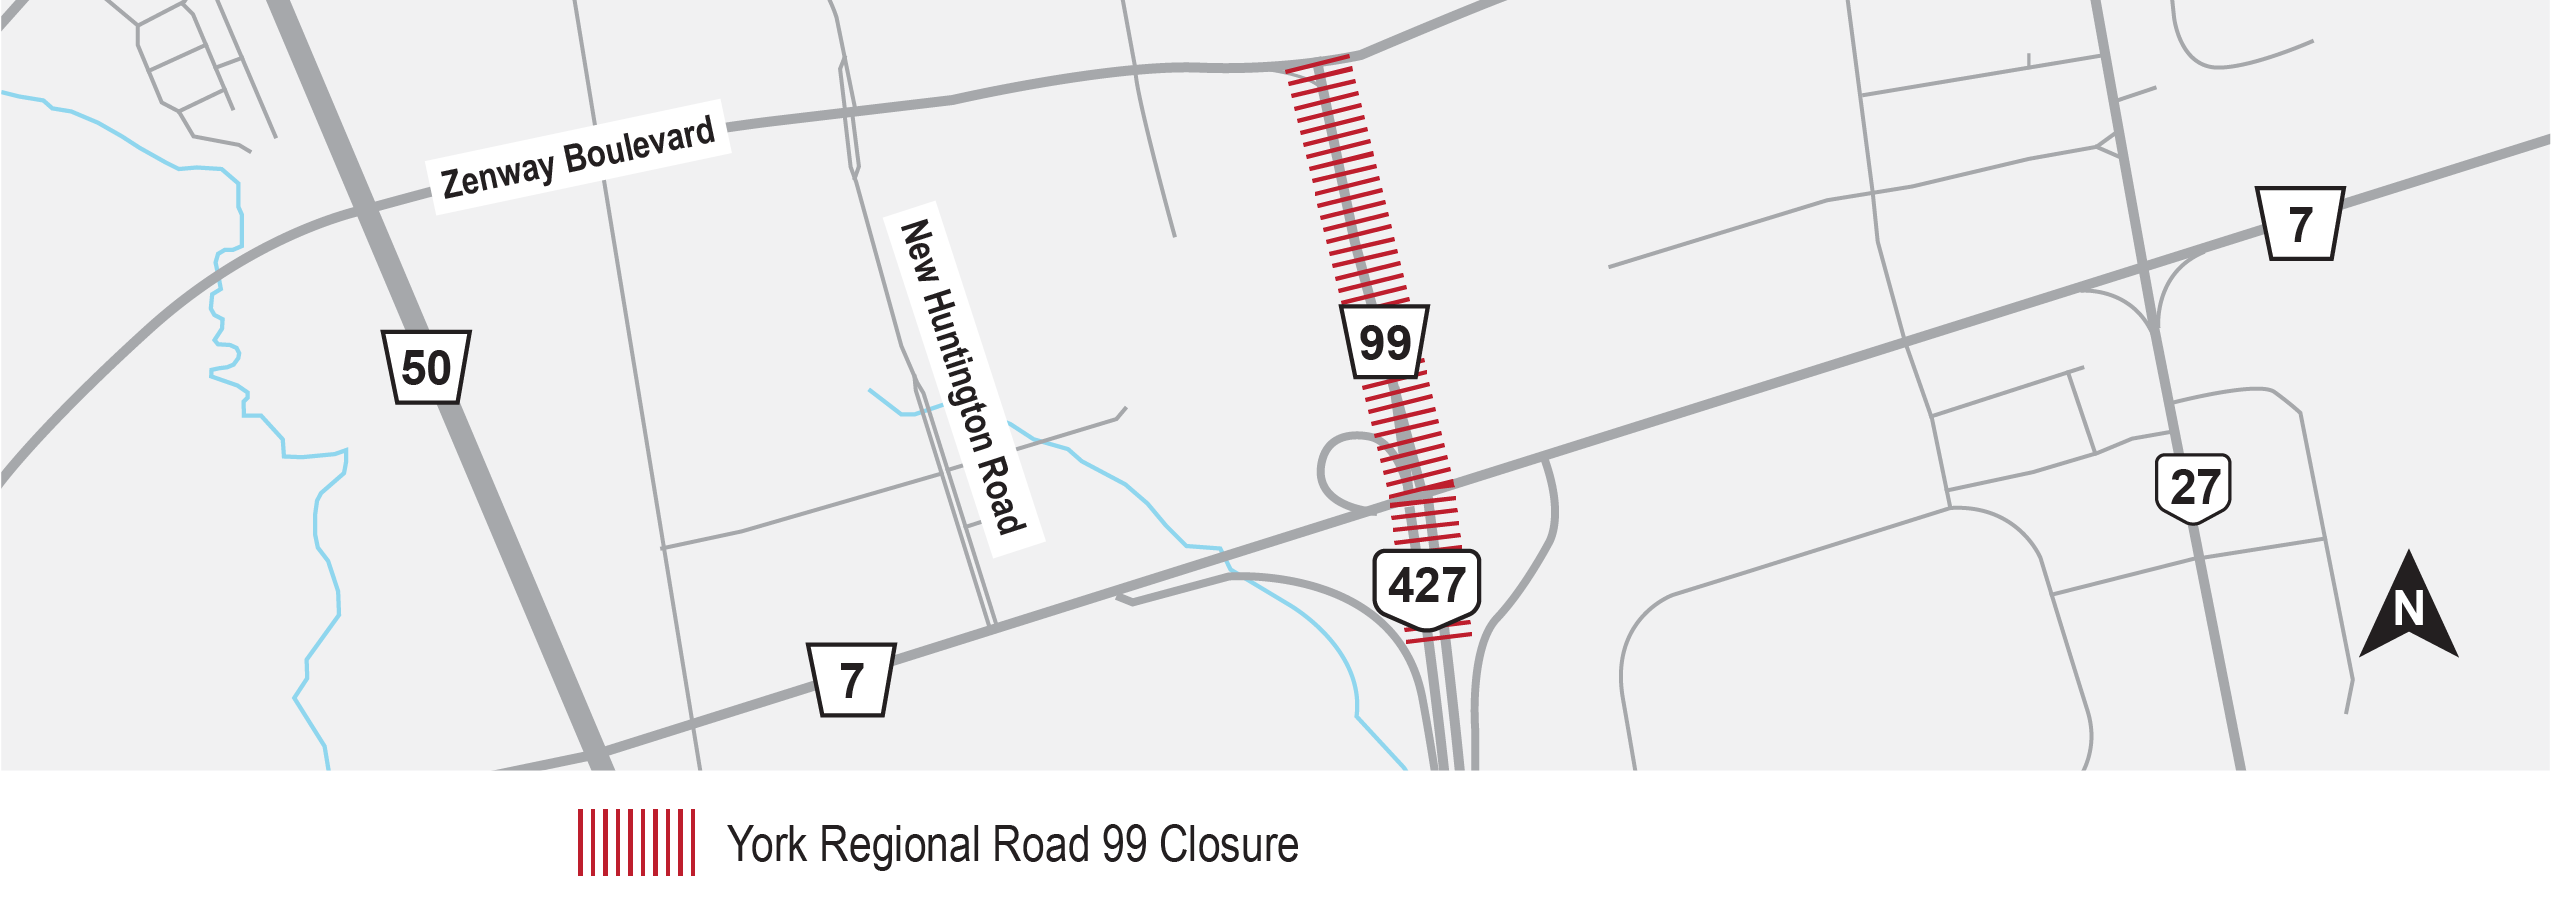 Map depicting location of permanent closure on Highway 427 (legally known as York Regional Road 99) between Highway 7 and Zenway Boulevard